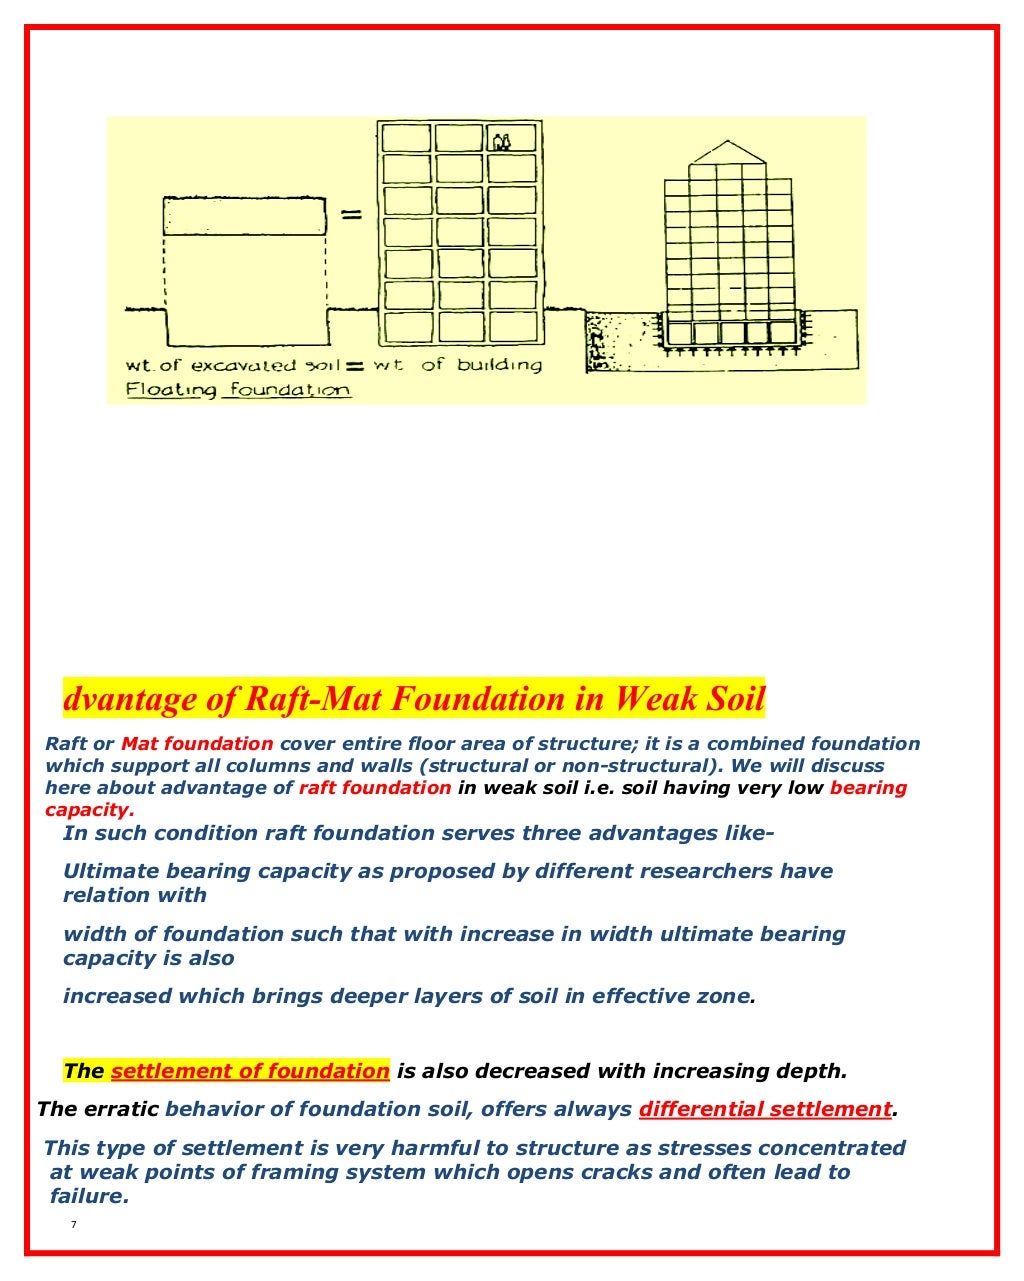 analysis of thick raft foundation with different type of f e